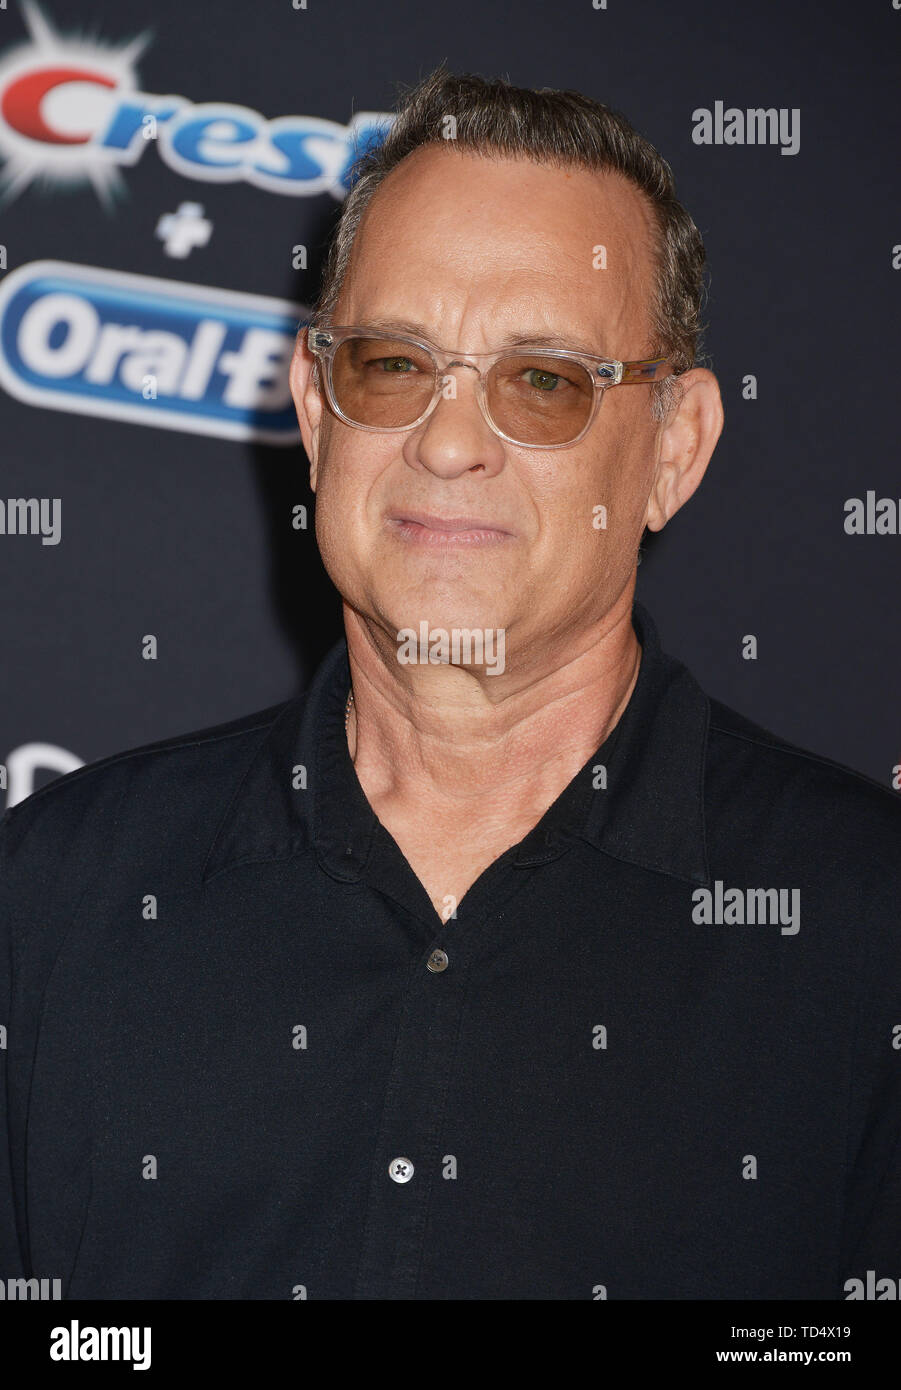 Tom Hanks 046 arrives at the premiere of Disney and Pixar's 'Toy Story 4' on June 11, 2019 in Los Angeles, California. - Stock Image